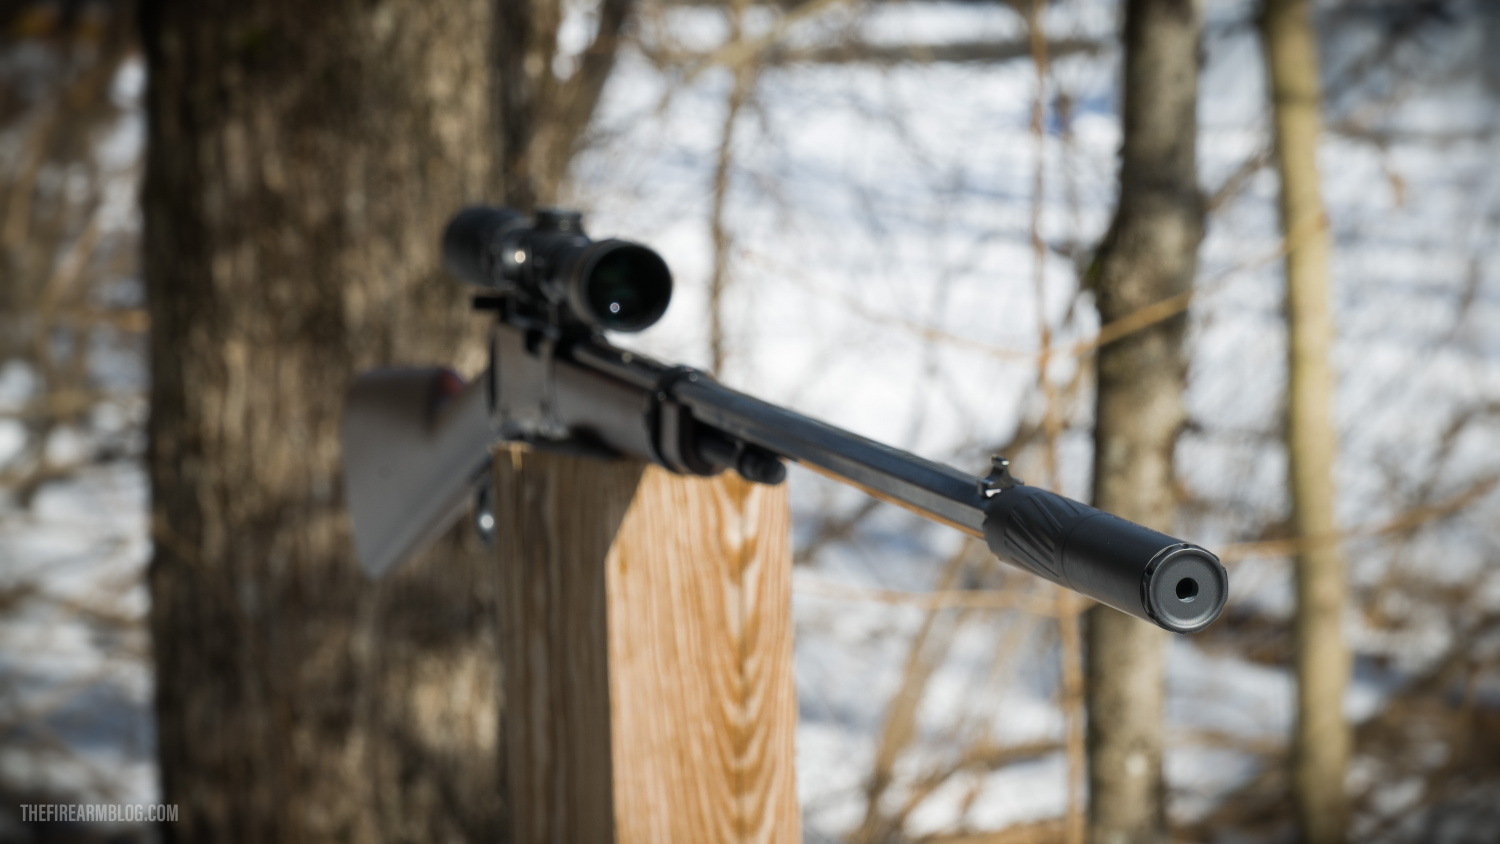 SILENCER SATURDAY #113: A Glorious Rimfire Silencer Setup - Perfectly Quiet